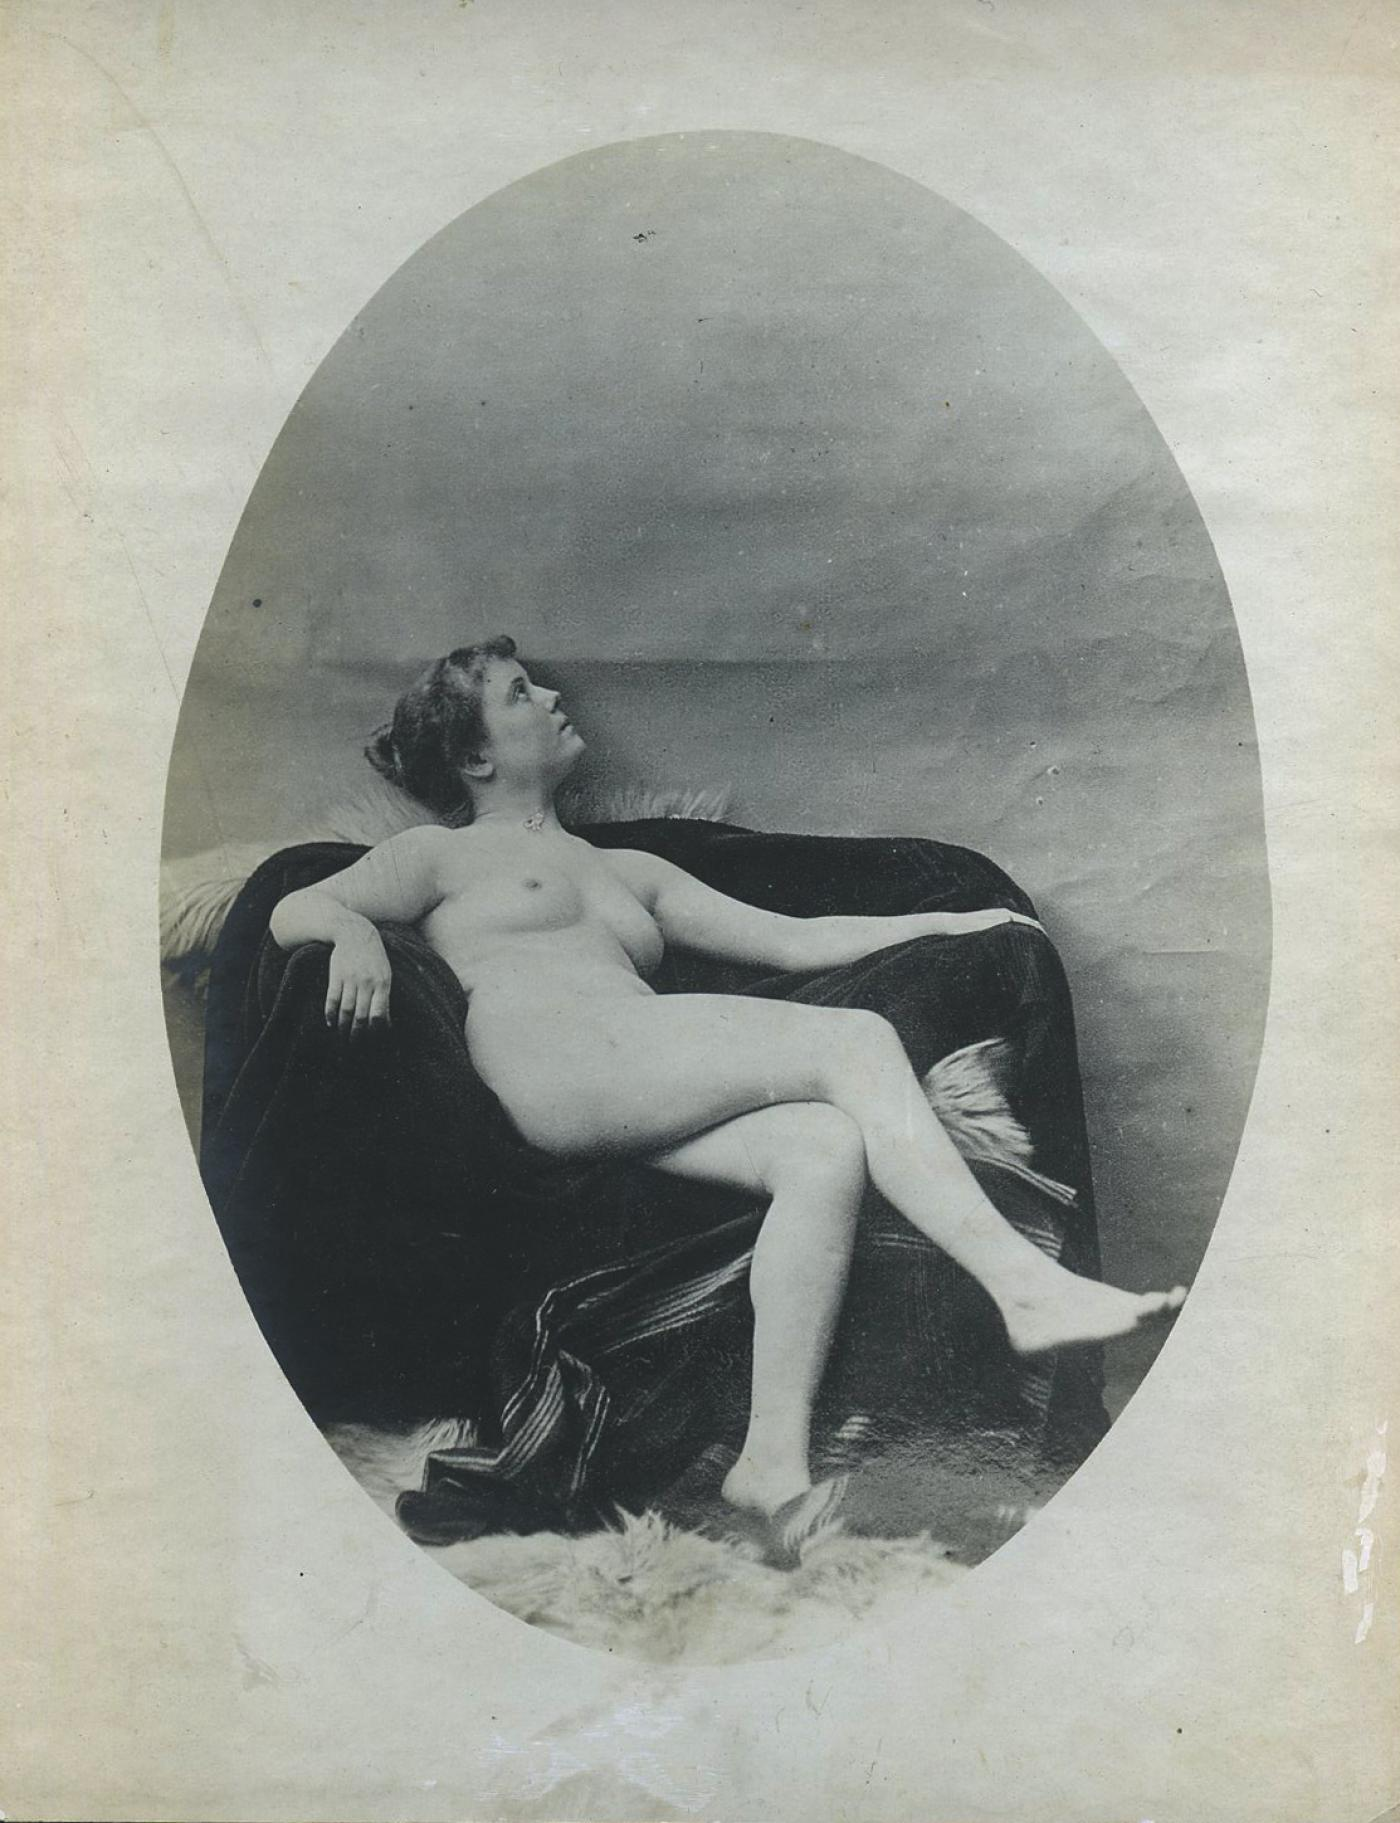 antique photo of a nude woman